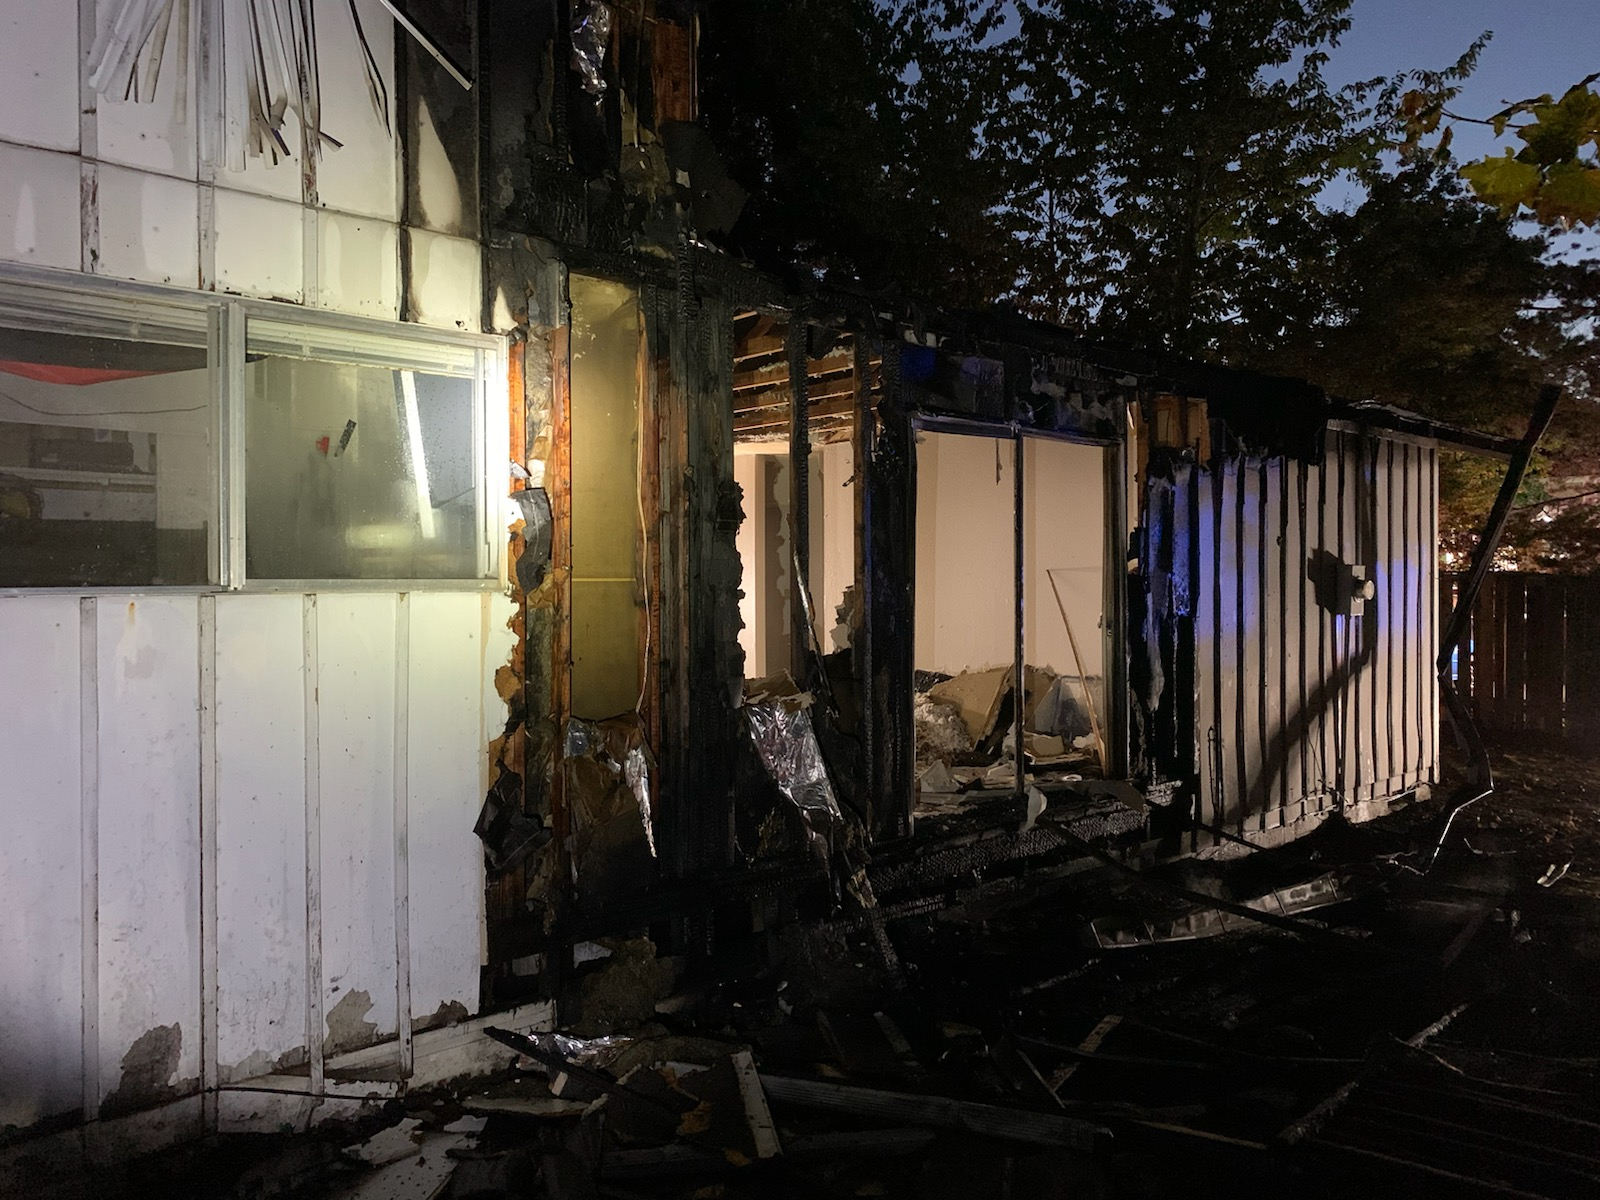 Occupants evacuated after fire sparks at Beaverton apartment